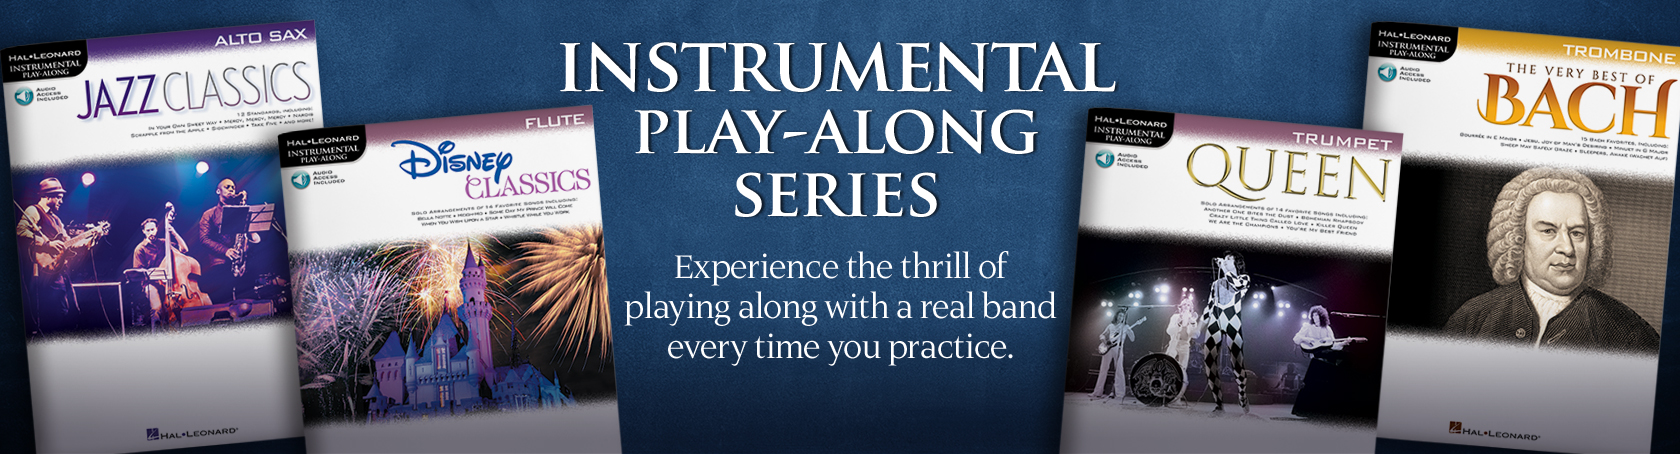 Instrumental Play-Along Series